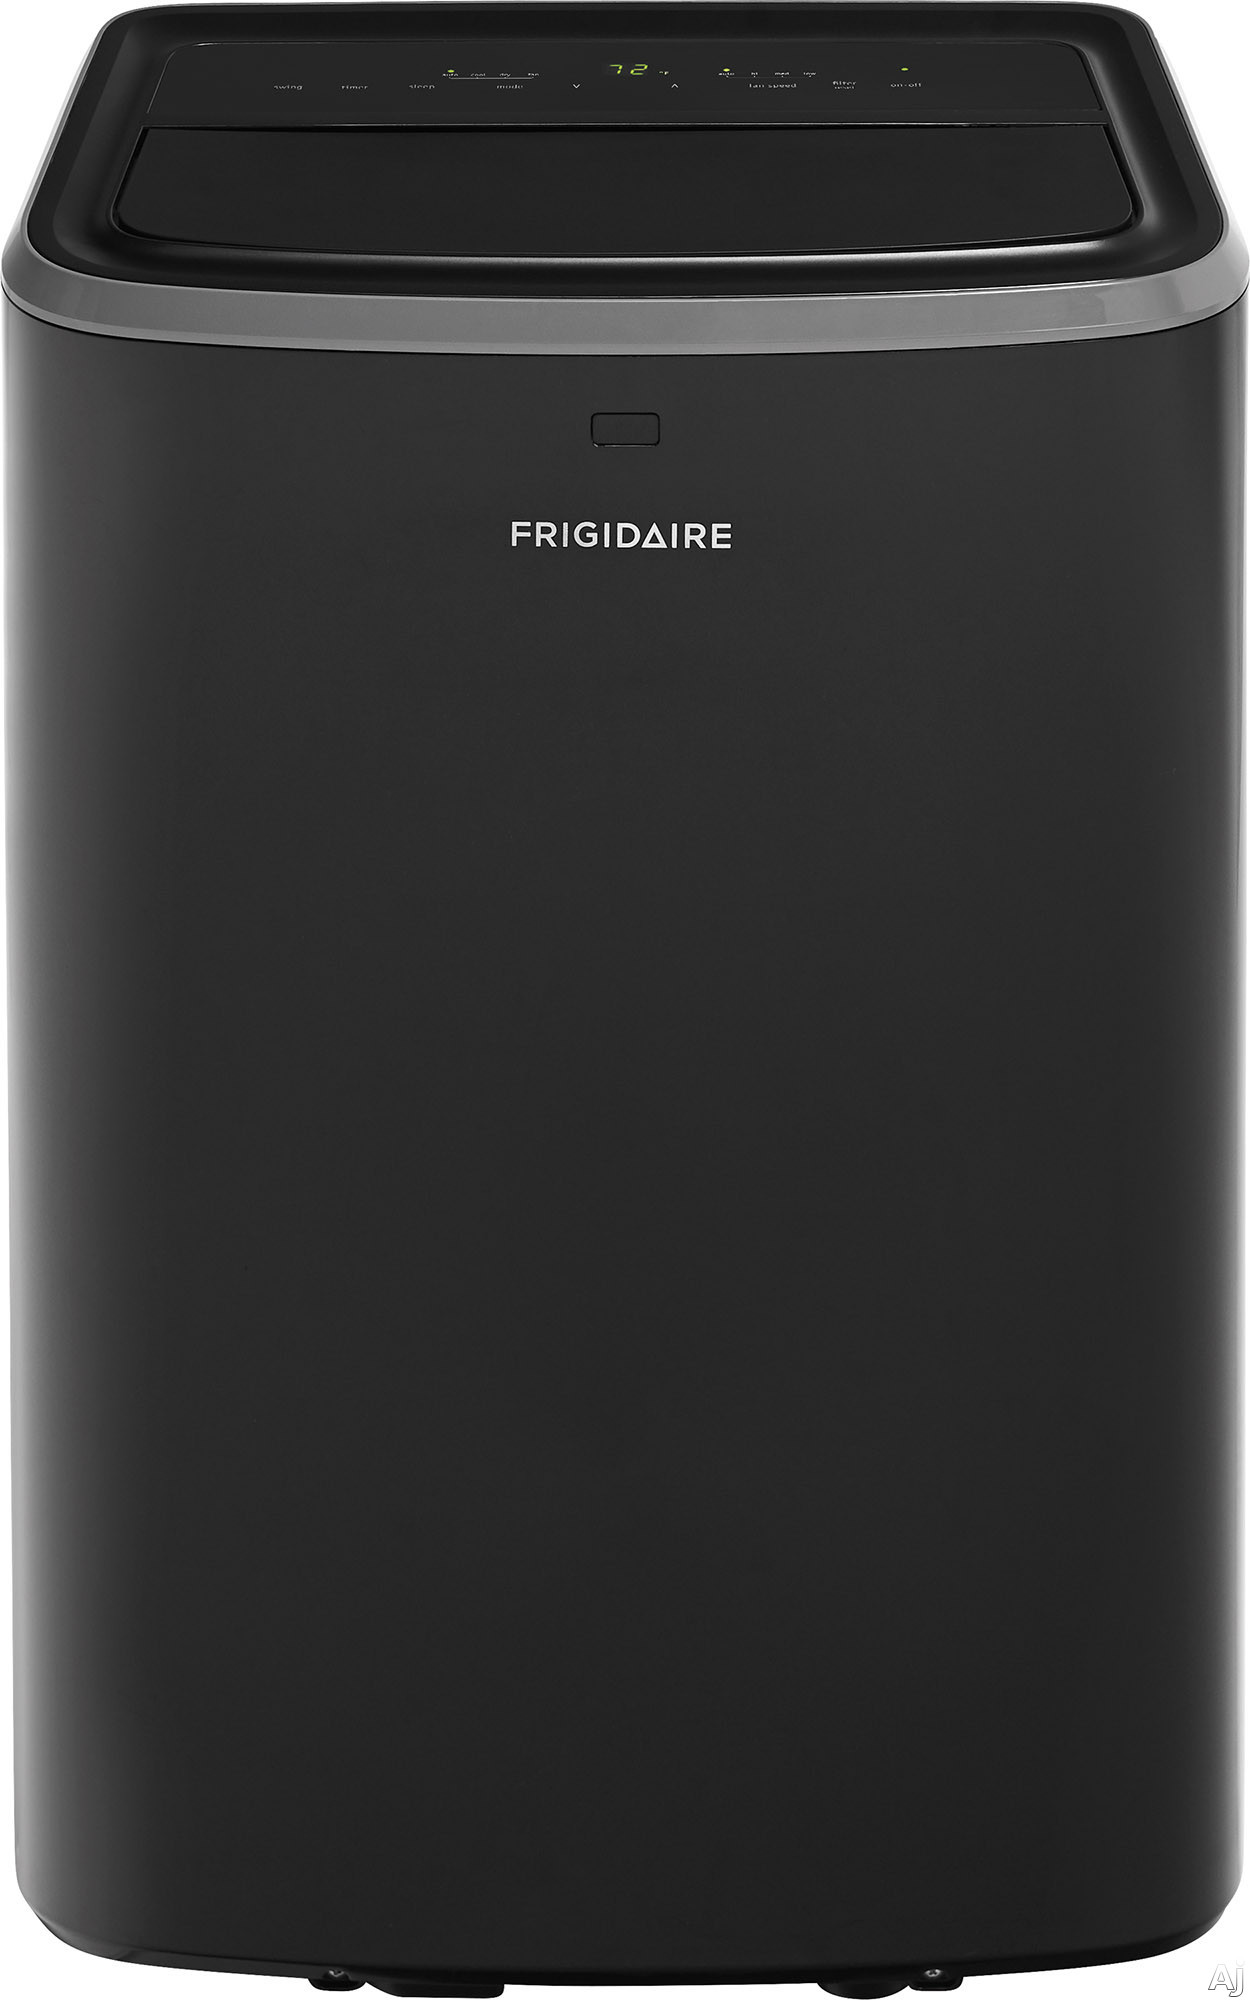 Frigidaire FFPA1422U1 14,000 BTU Portable Air Conditioner with SpaceWise® Portable Design, Effortless™ Temperature Control, Programmable 24-Hour Timer, Effortless™ Clean Filter, Effortl